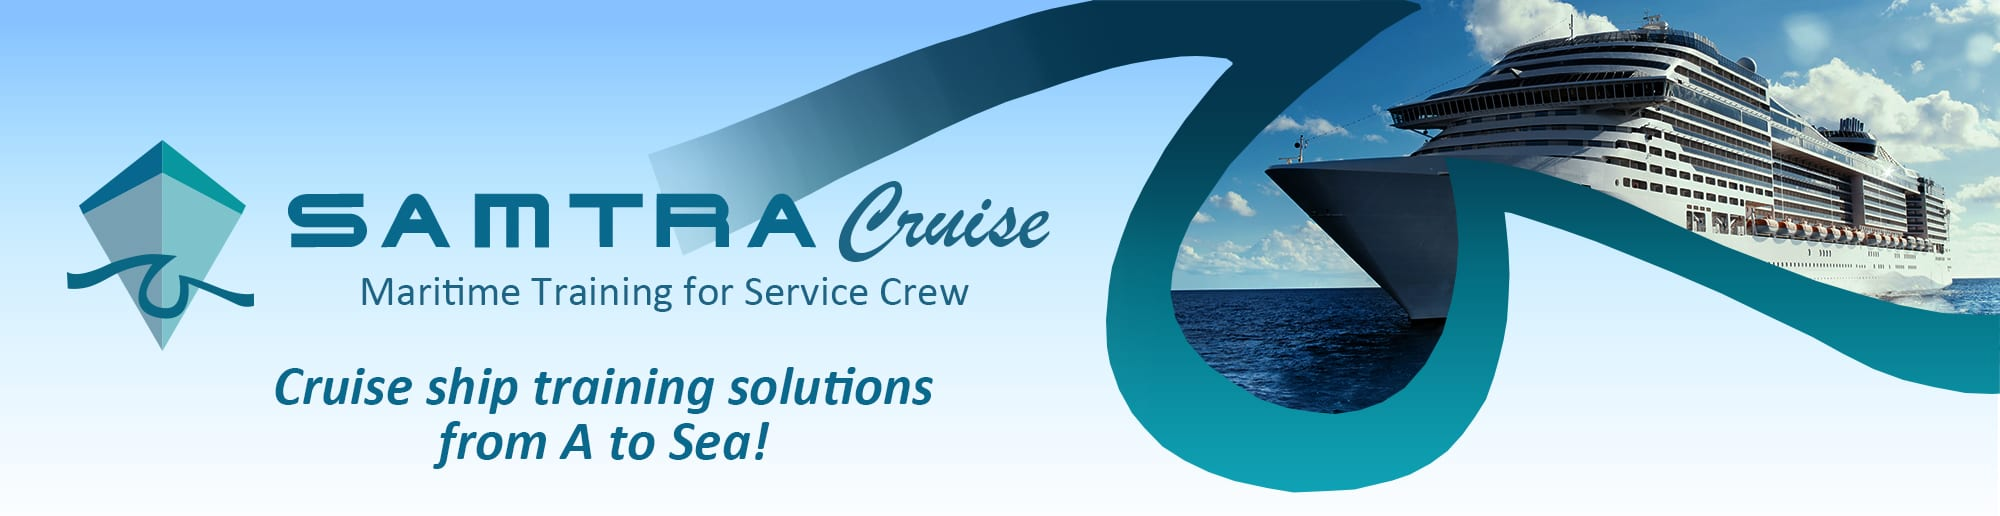 SAMTRA Cruise - Cruise Training Solutions